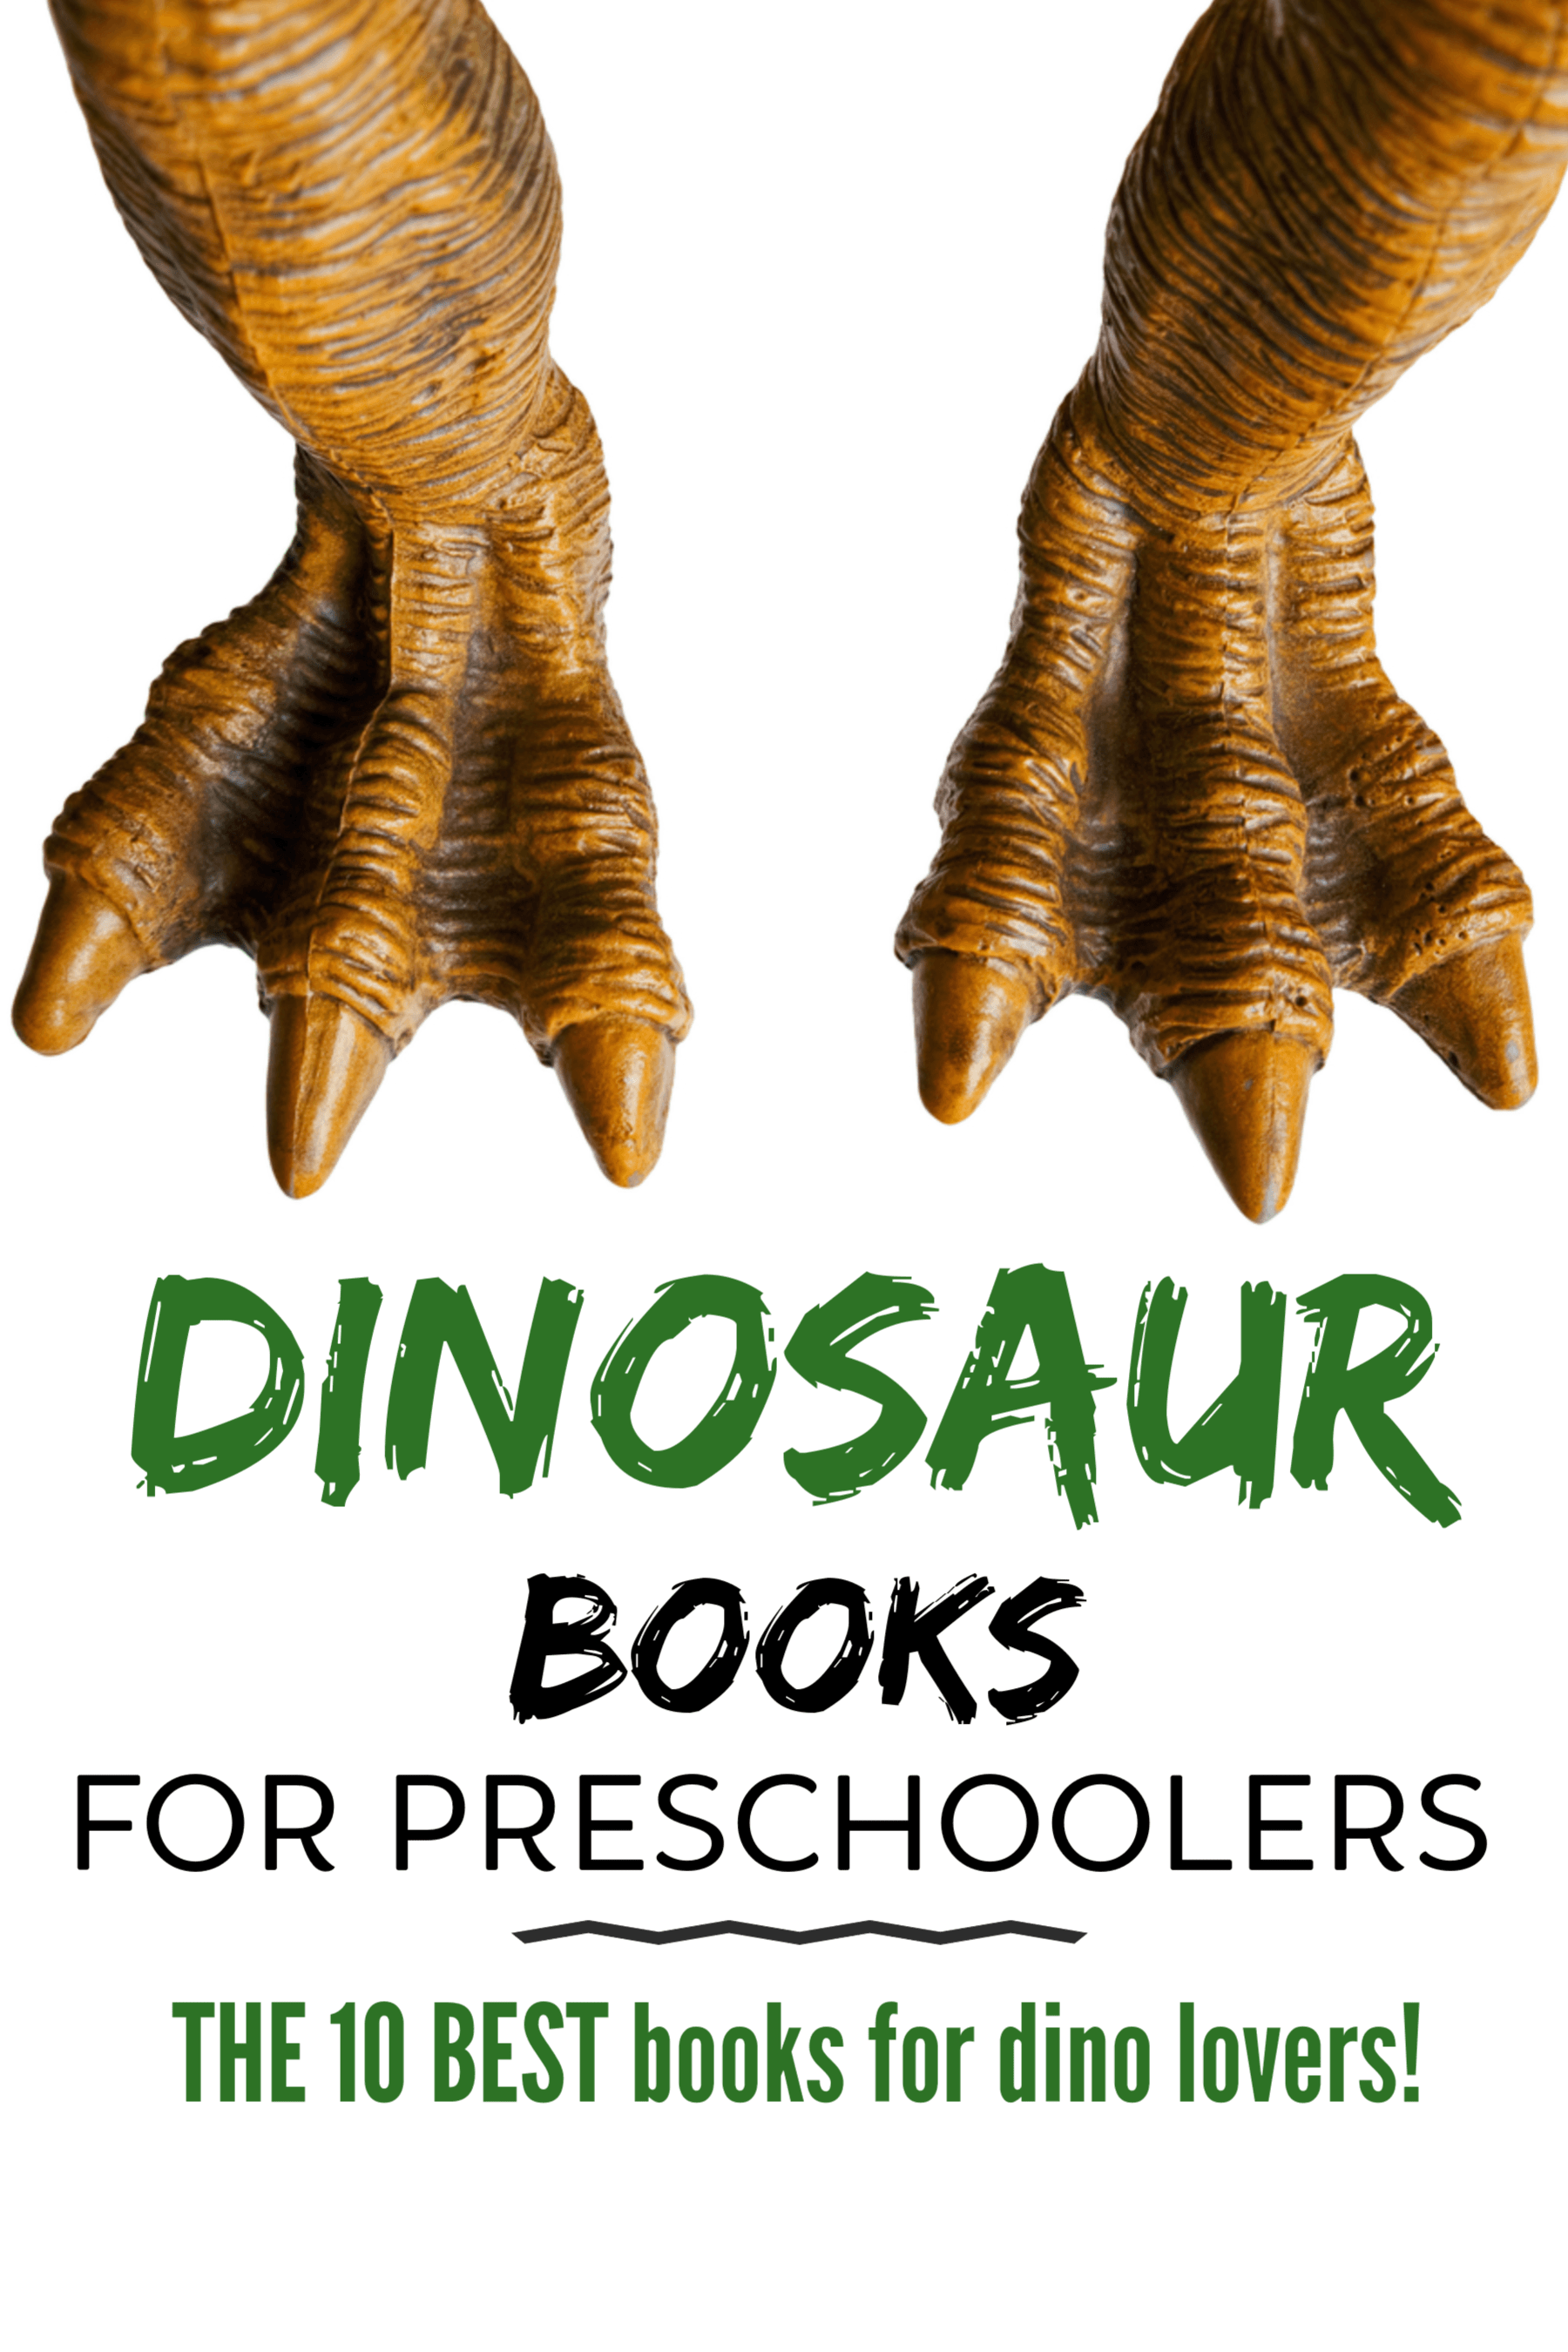 toy dinosur feet on a white background with text overlay reading dinosaur books for preschoolers